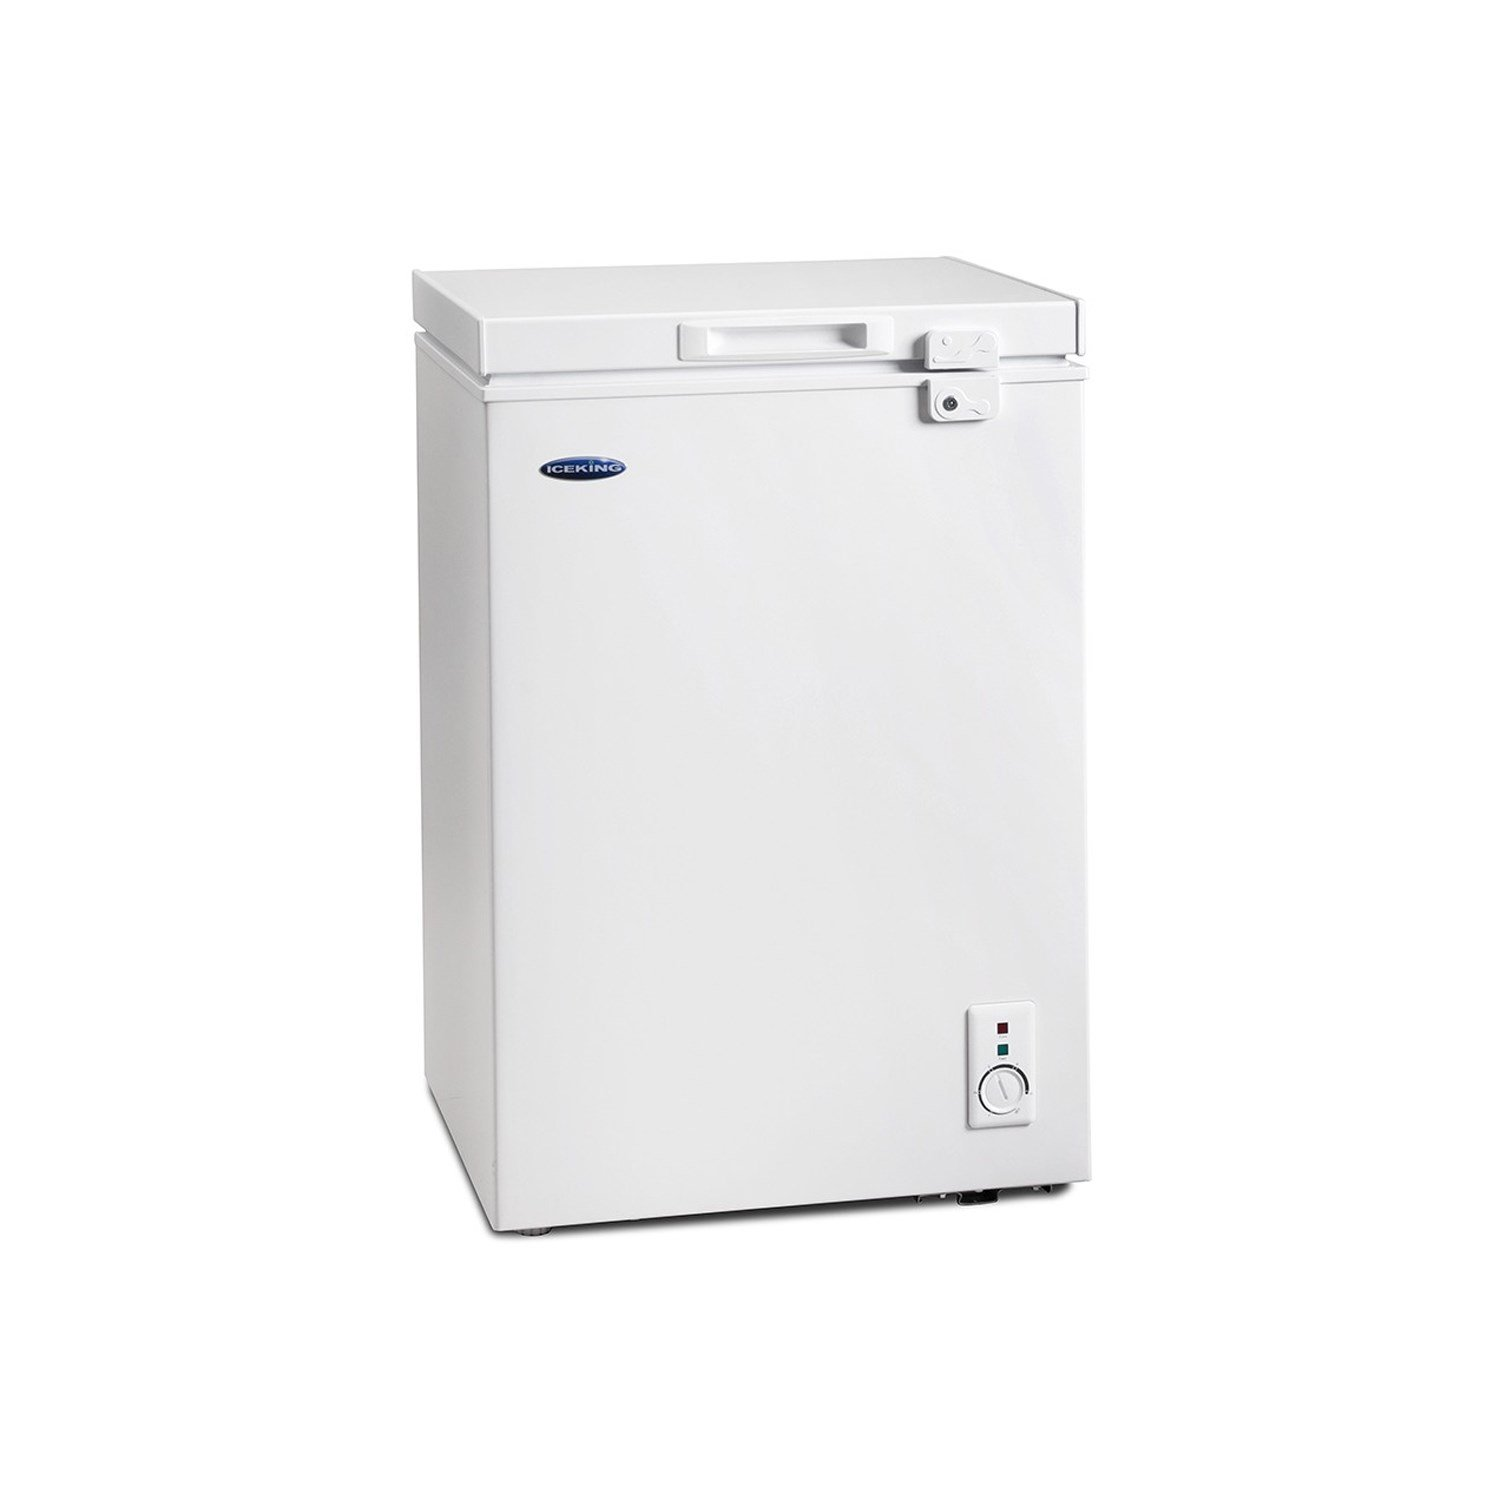 Ice King CH1042W 57cm Wide 98 Litre Chest Freezer - White [Energy Class A+] Iceking